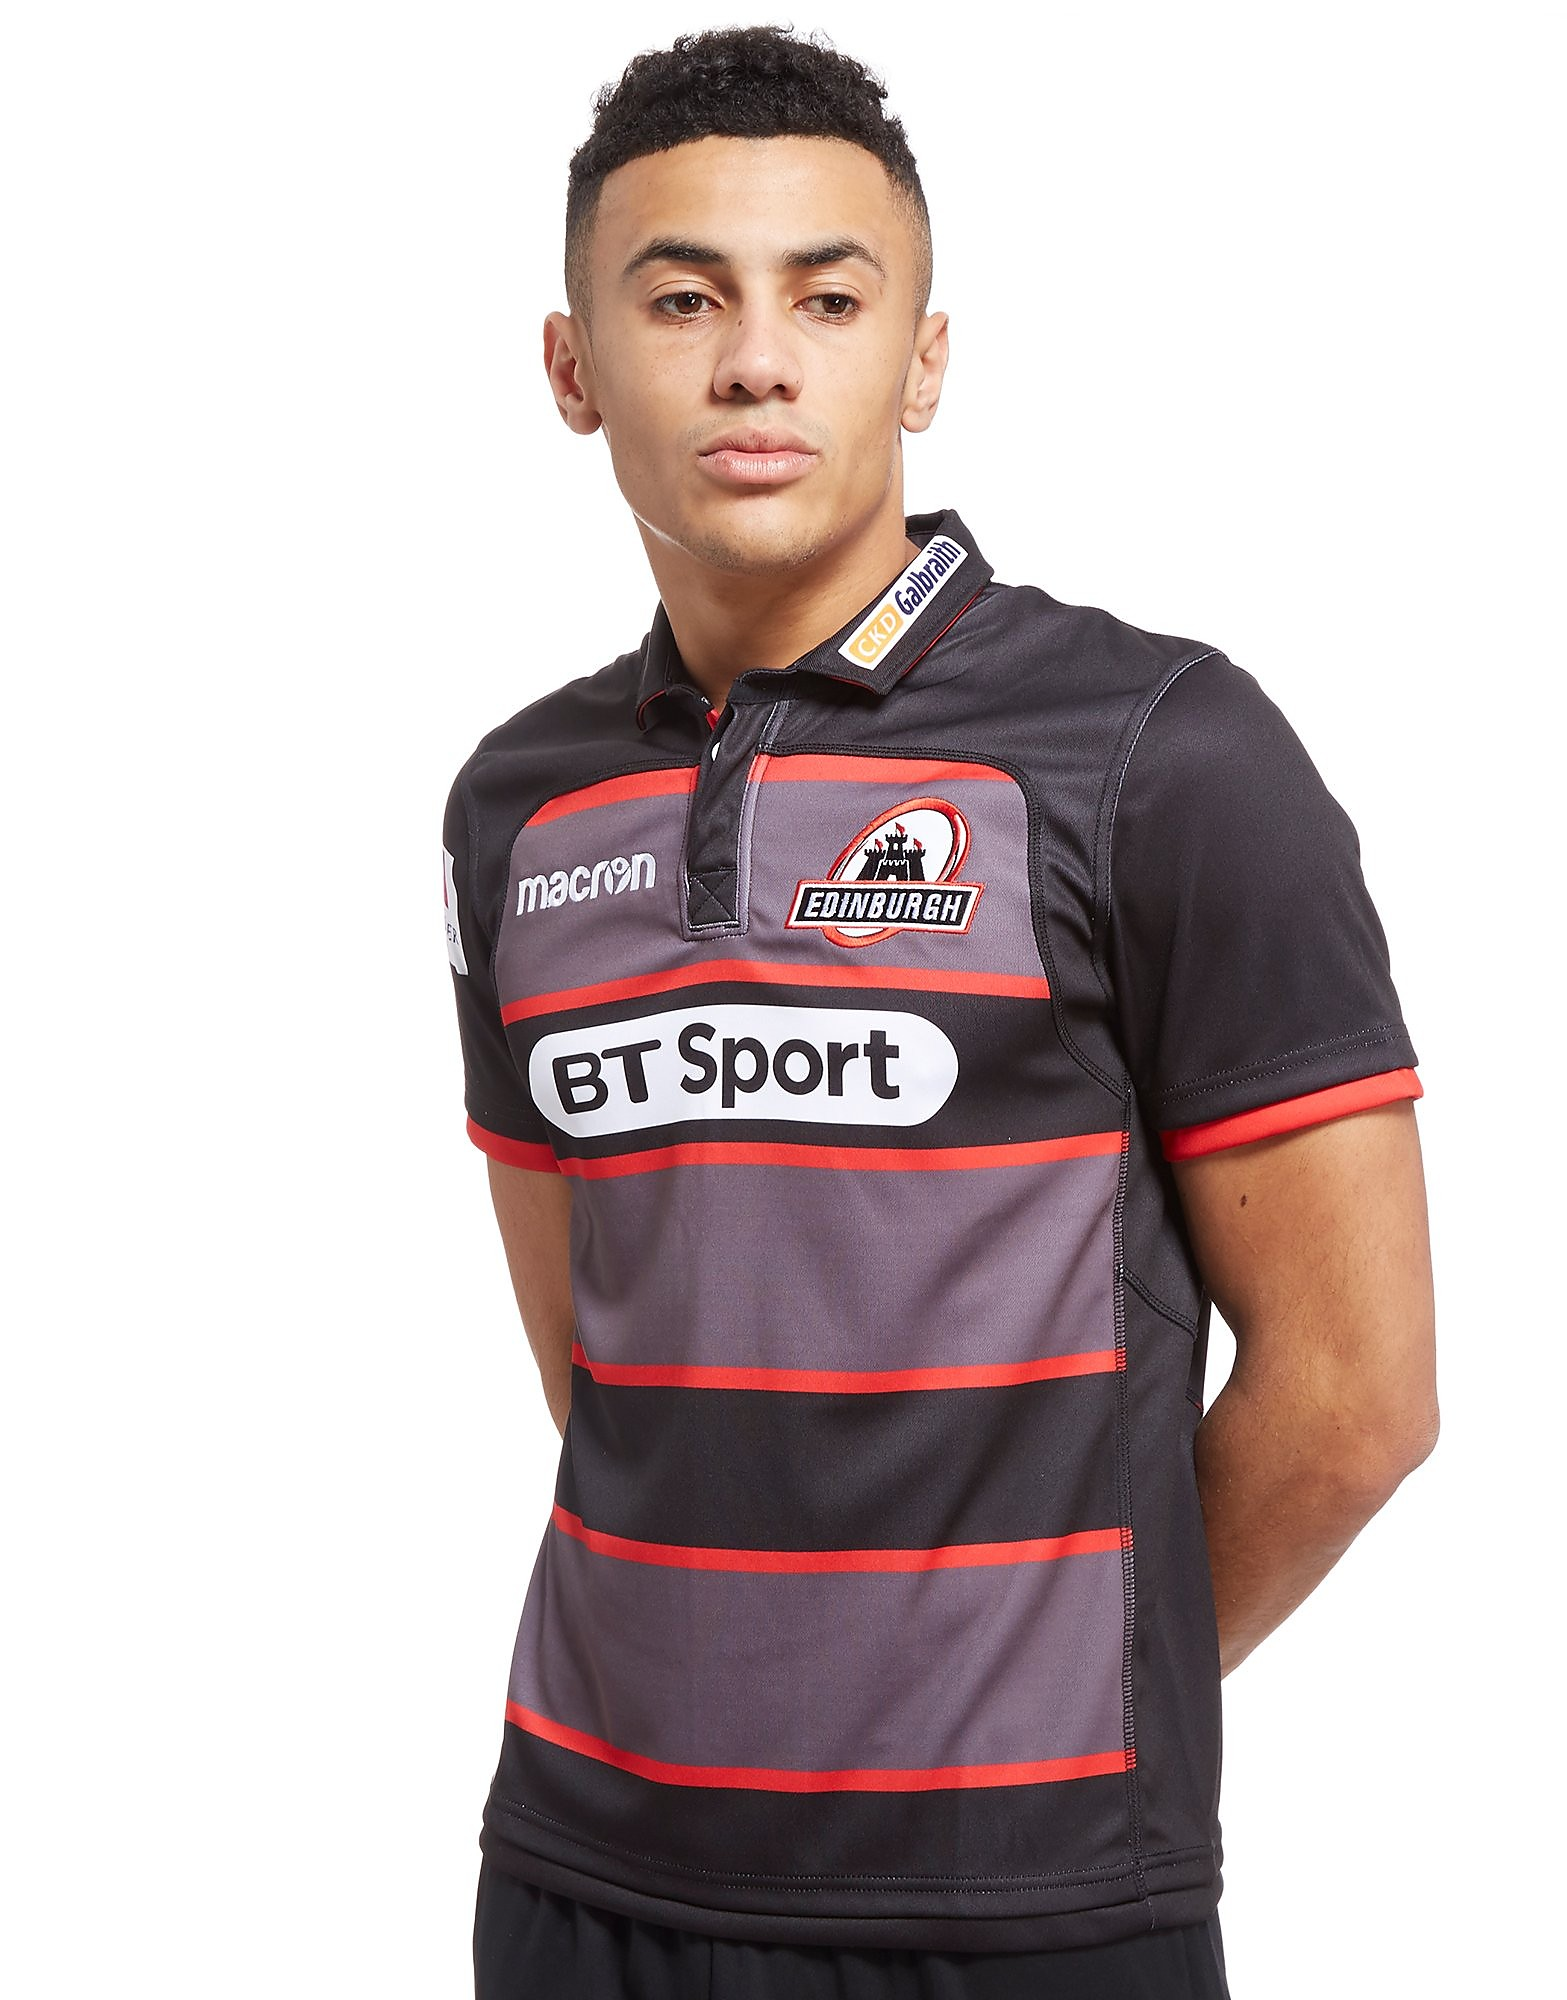 Macron Edinburgh Rugby 2017/18 Home Shirt